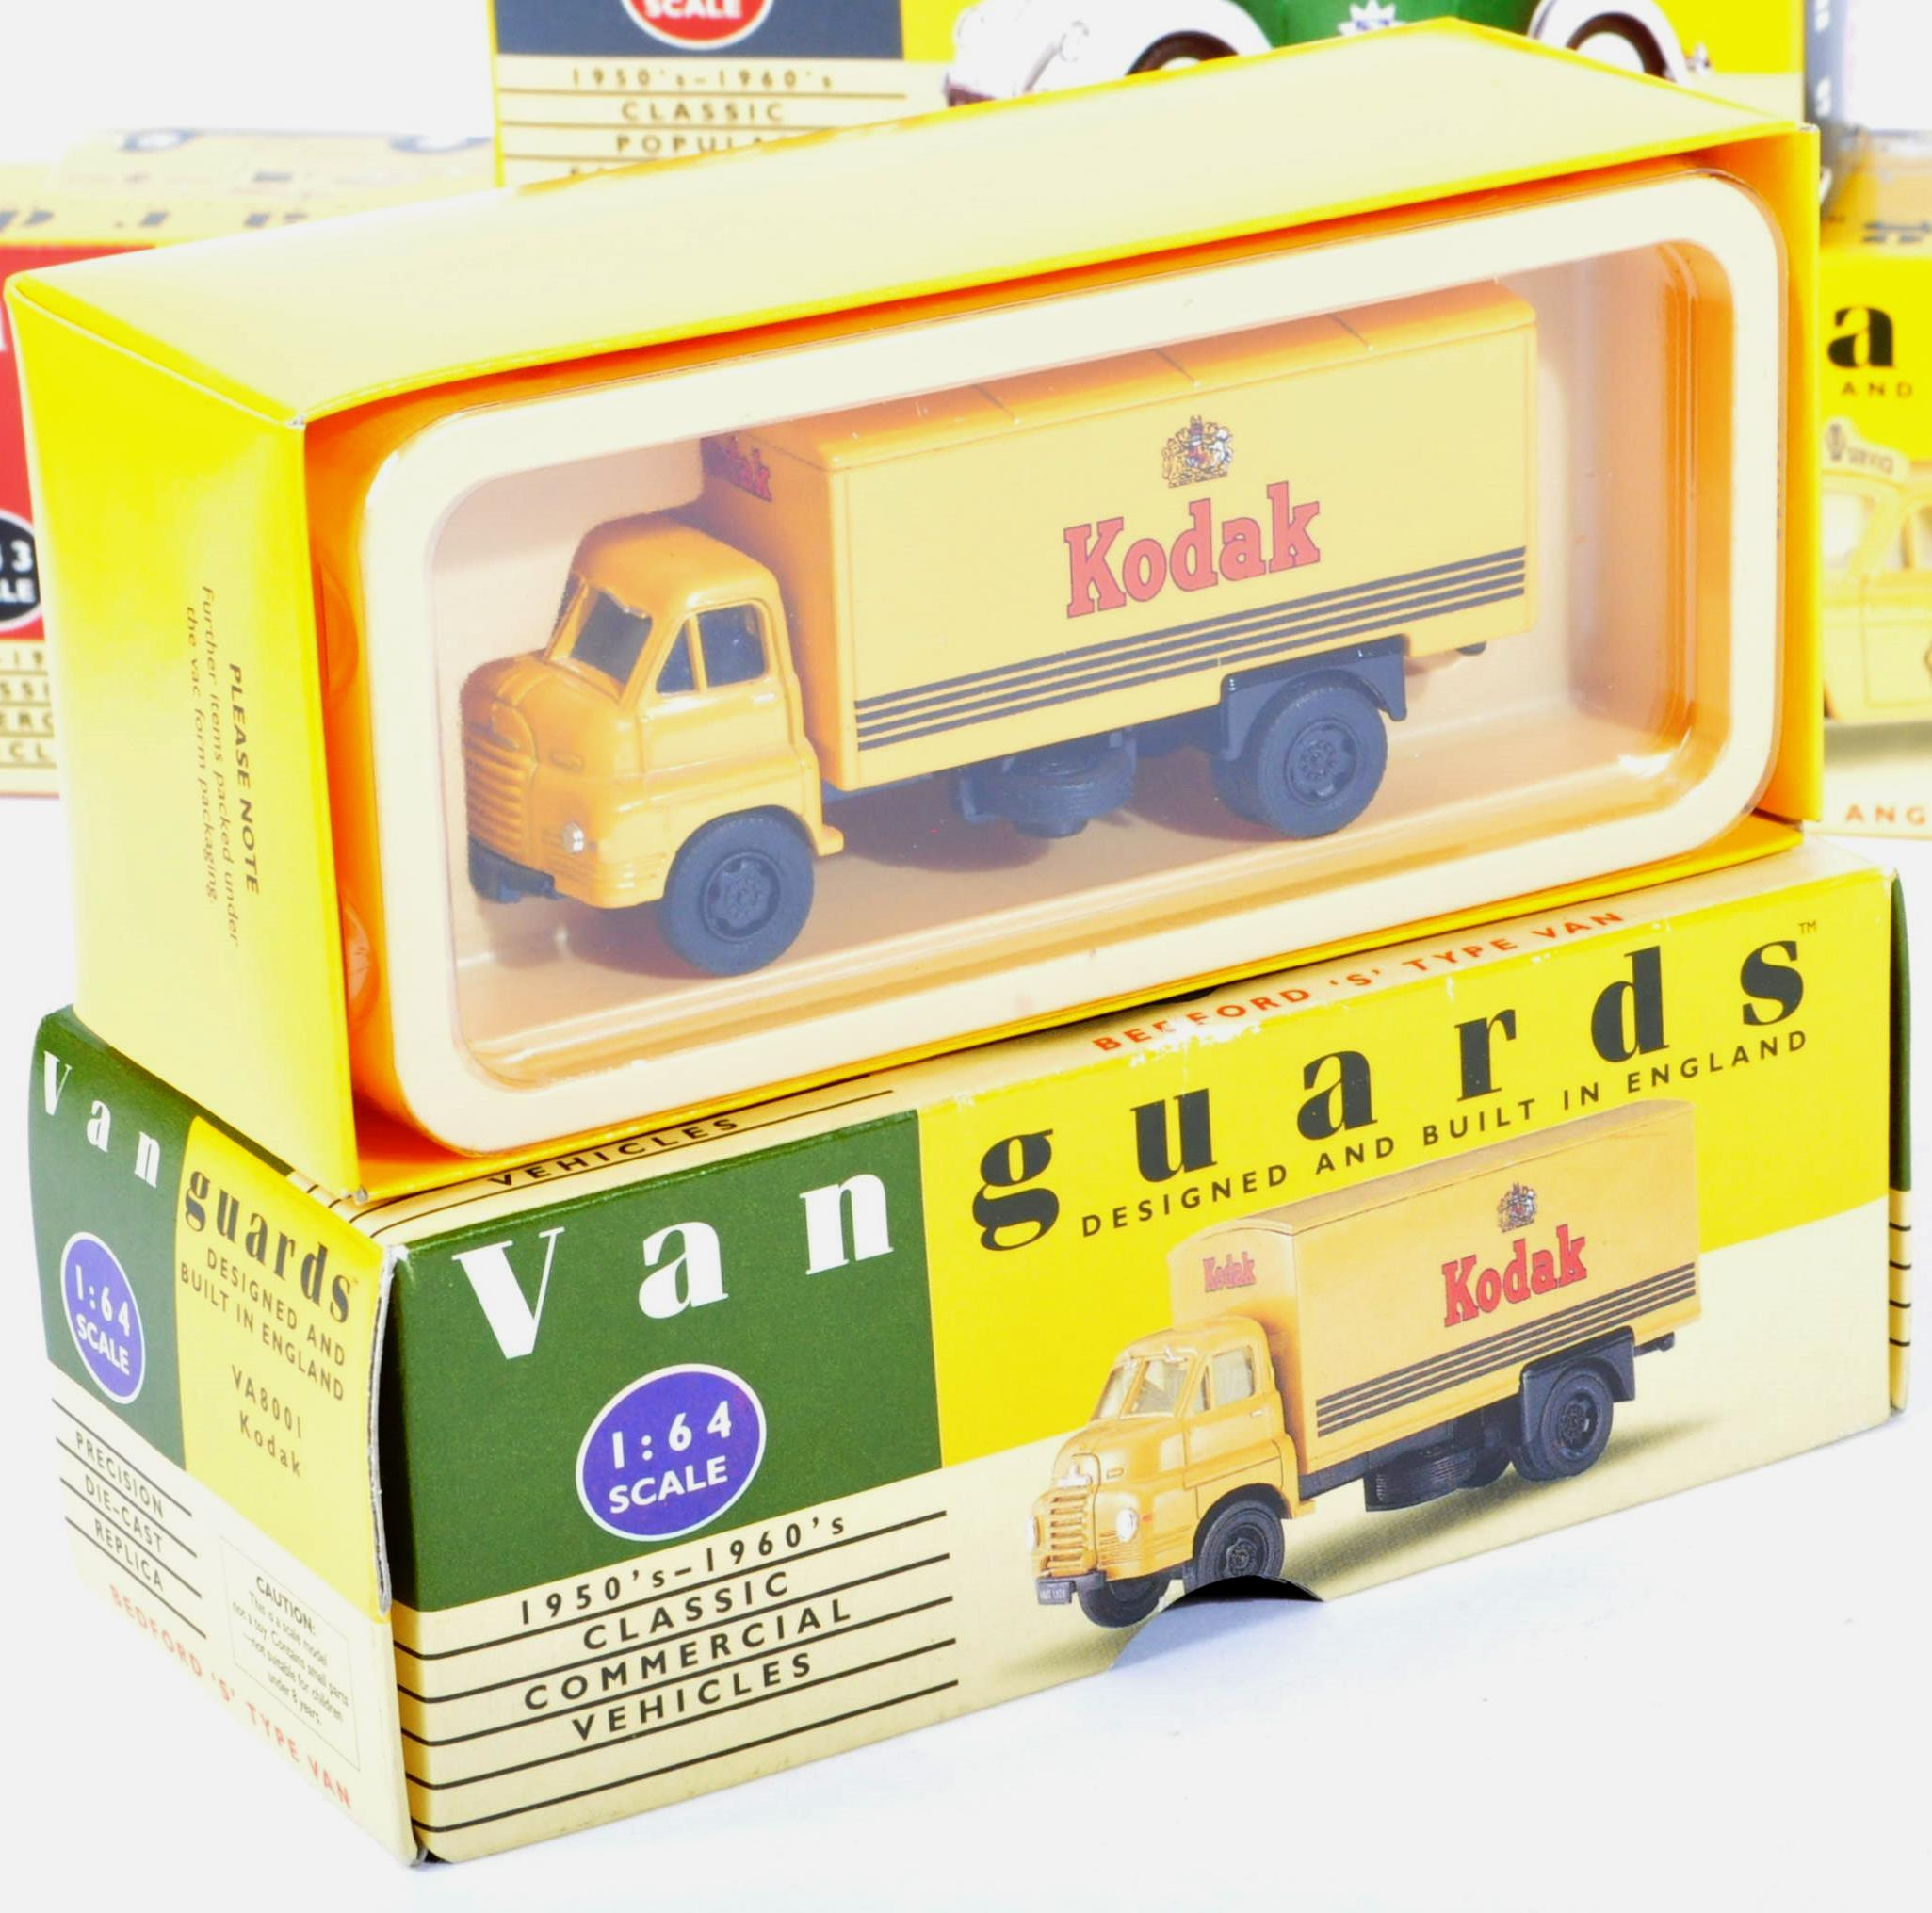 COLLECTION OF X10 LLEDO VANGUARDS DIECAST MODELS - Image 5 of 5